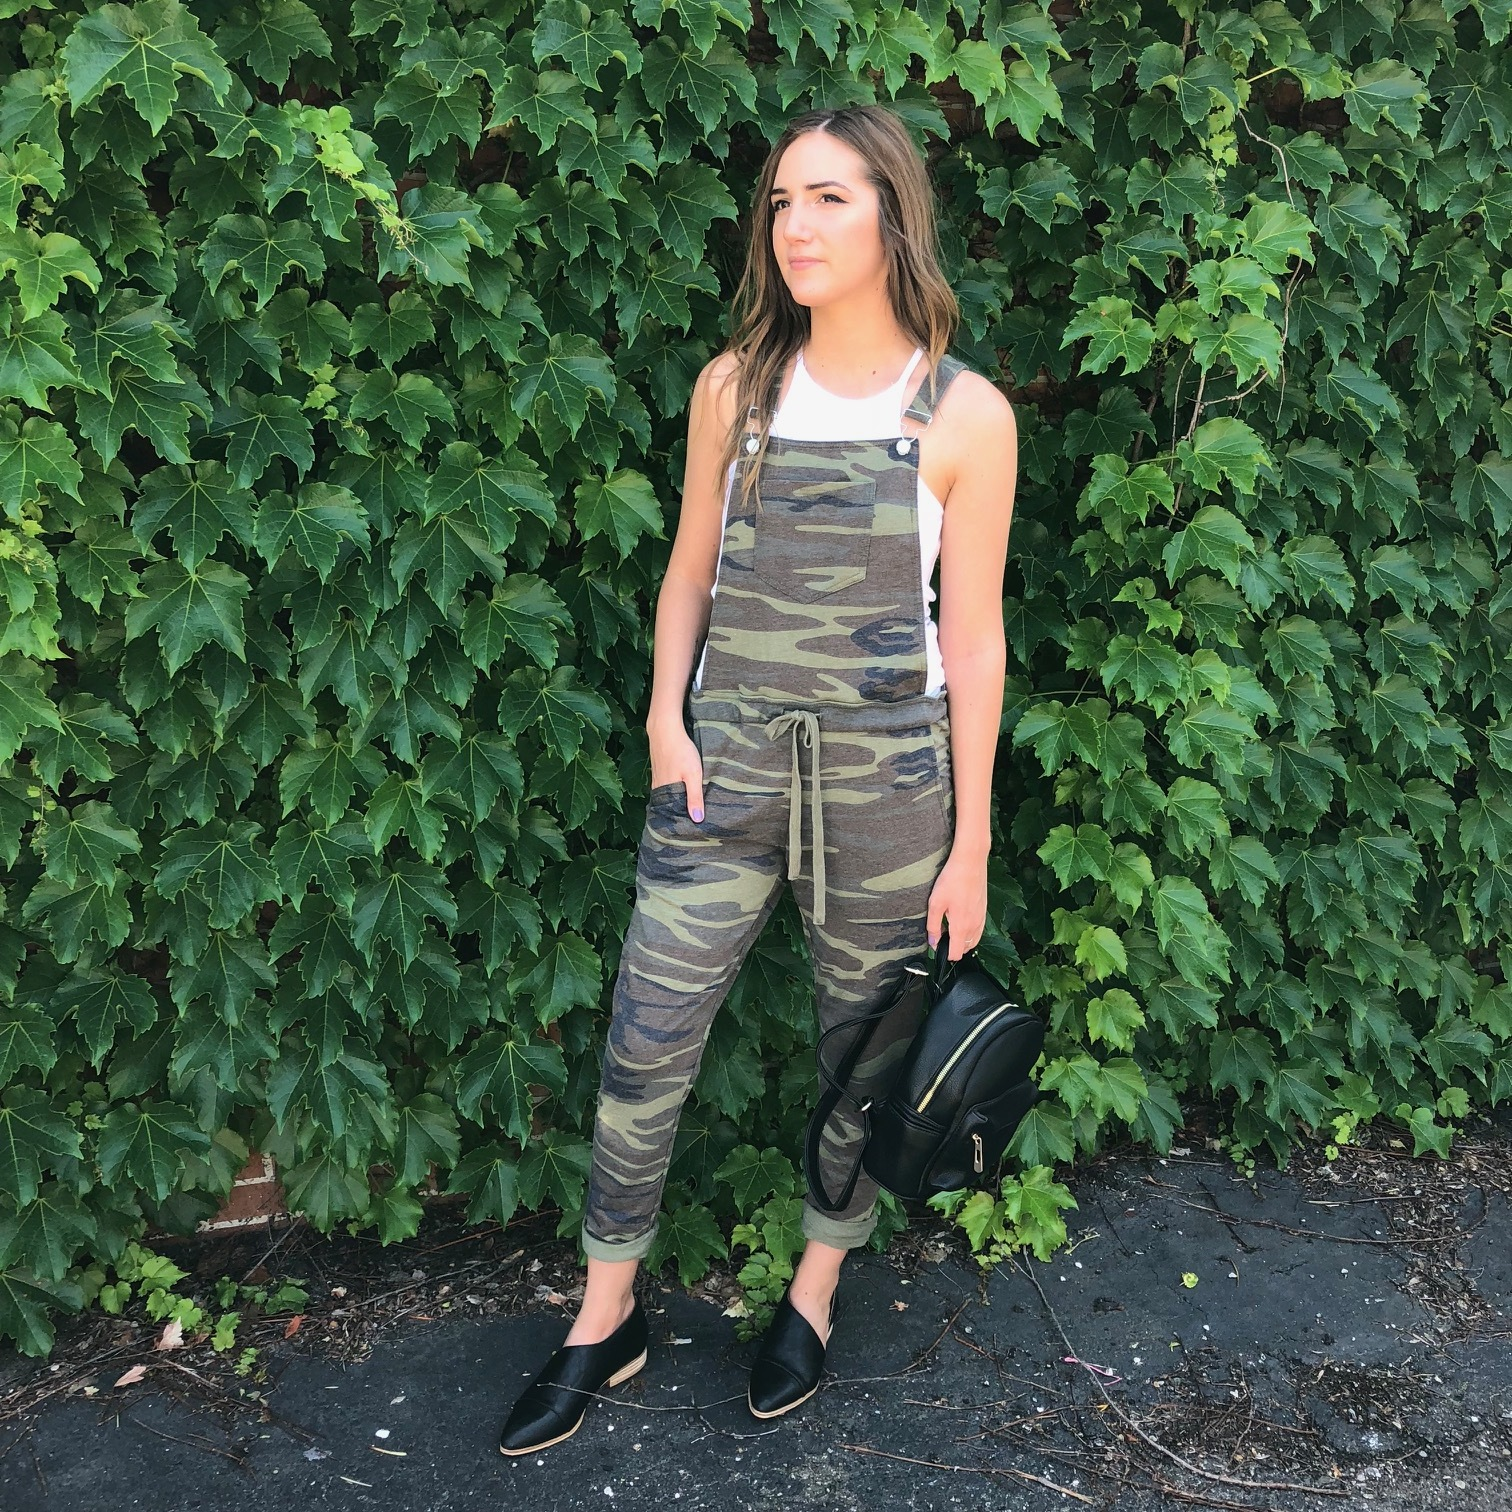 Z Supply Tank Top $24, Z Supply Camo Overalls $62, Backpack $38,  Black Sidecut Loafers